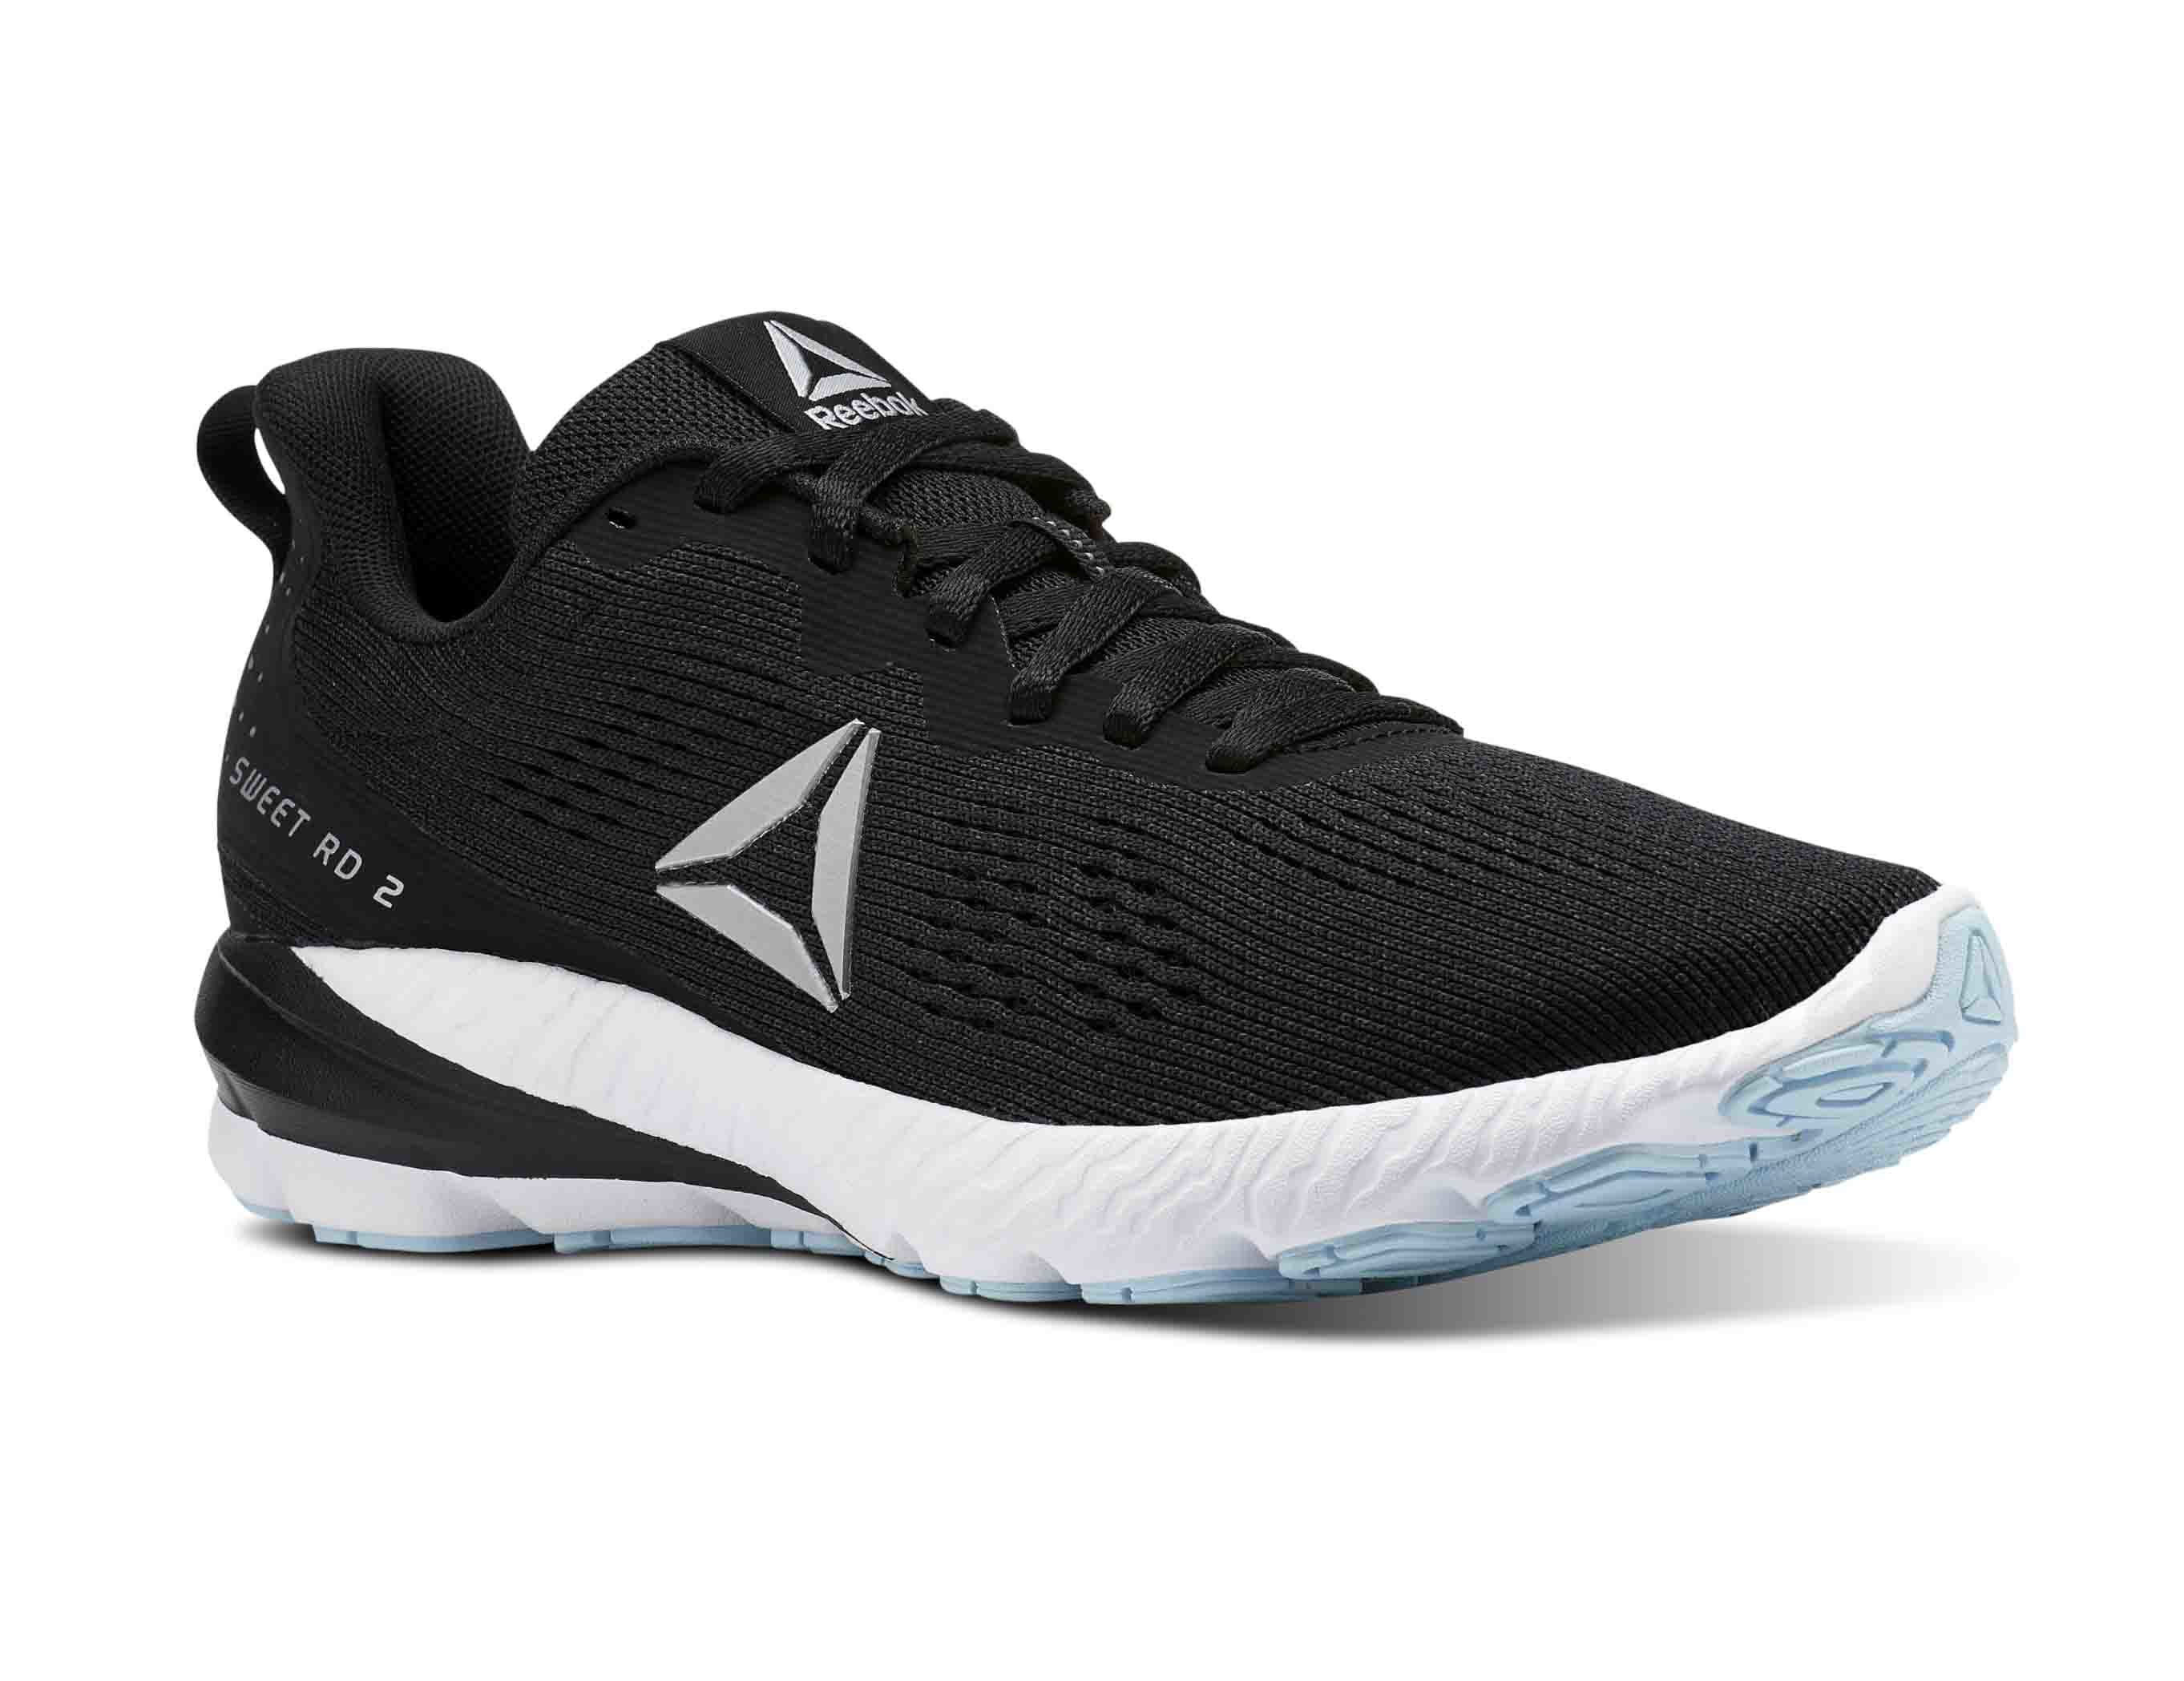 The Best Running Shoes for Women: Which